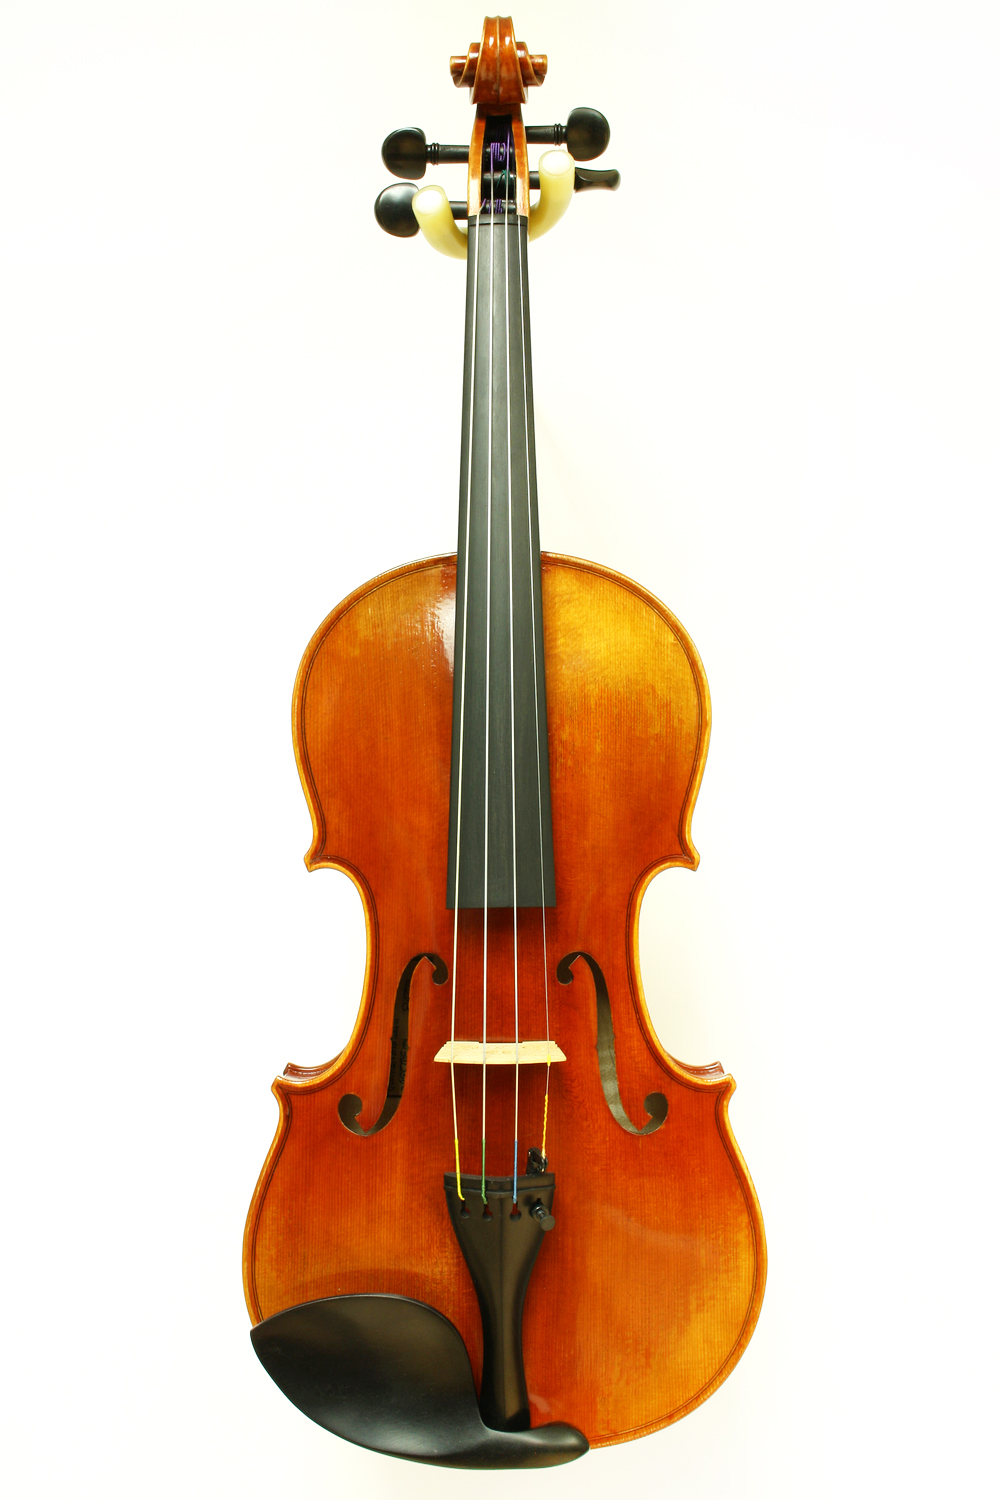 Sonatina Strings SV250E - $1999